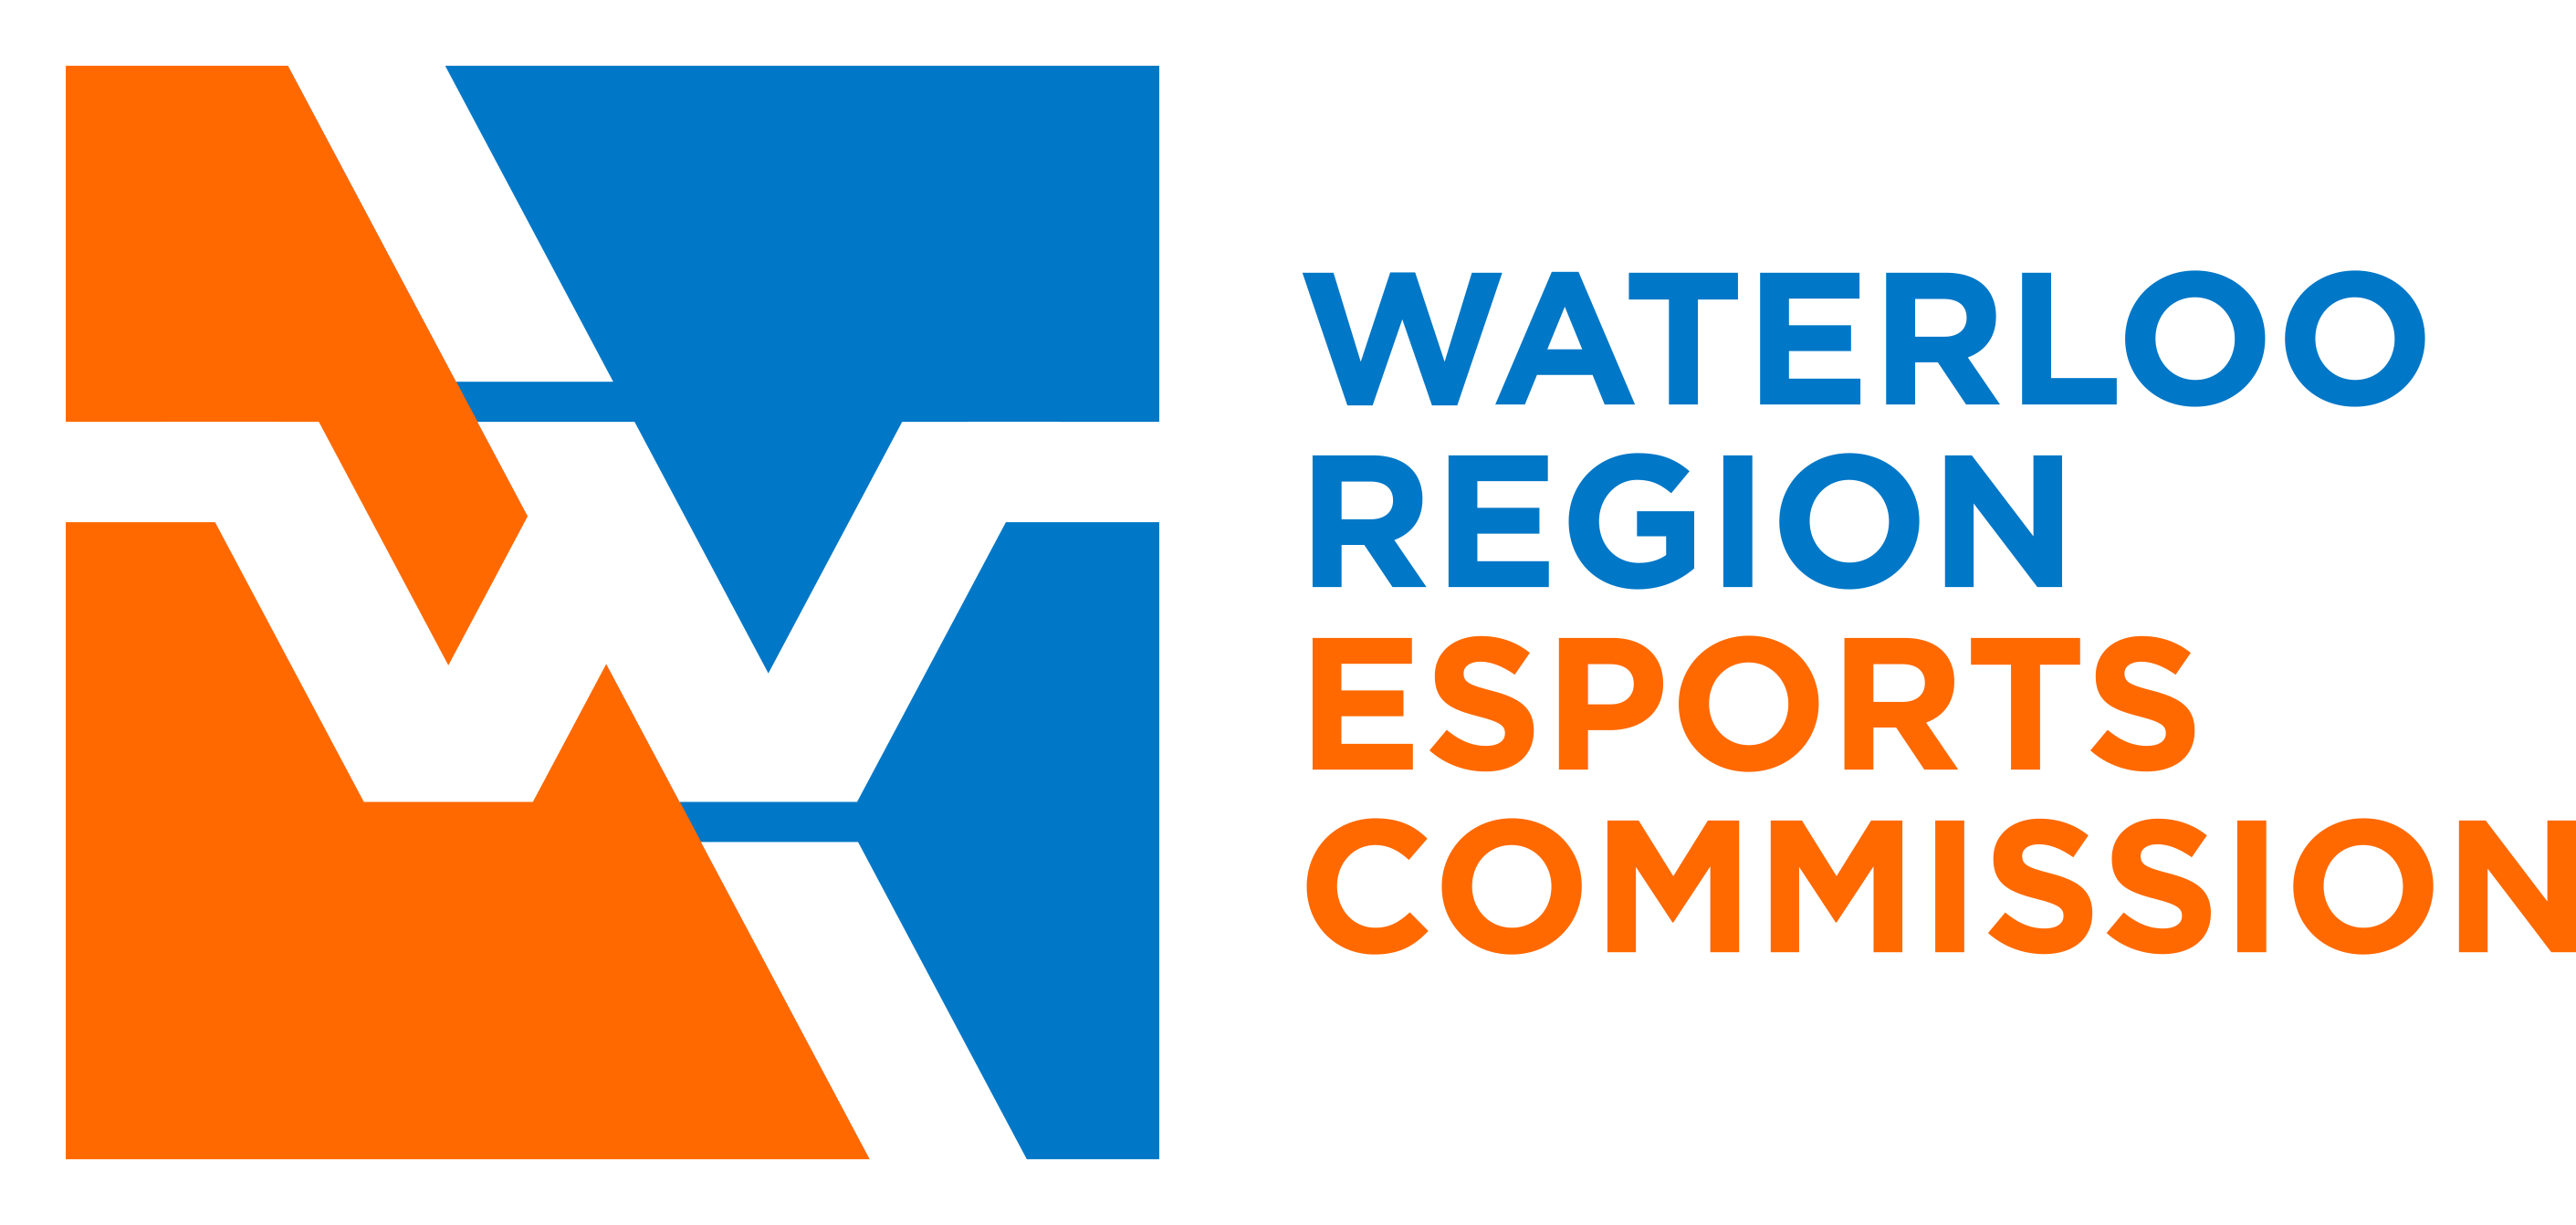 the blue, orange and white logo for the Waterloo Region Esports Commission with a stylized W on the left, and the words Waterloo Region Esports Commission stacked on top of each other on the right